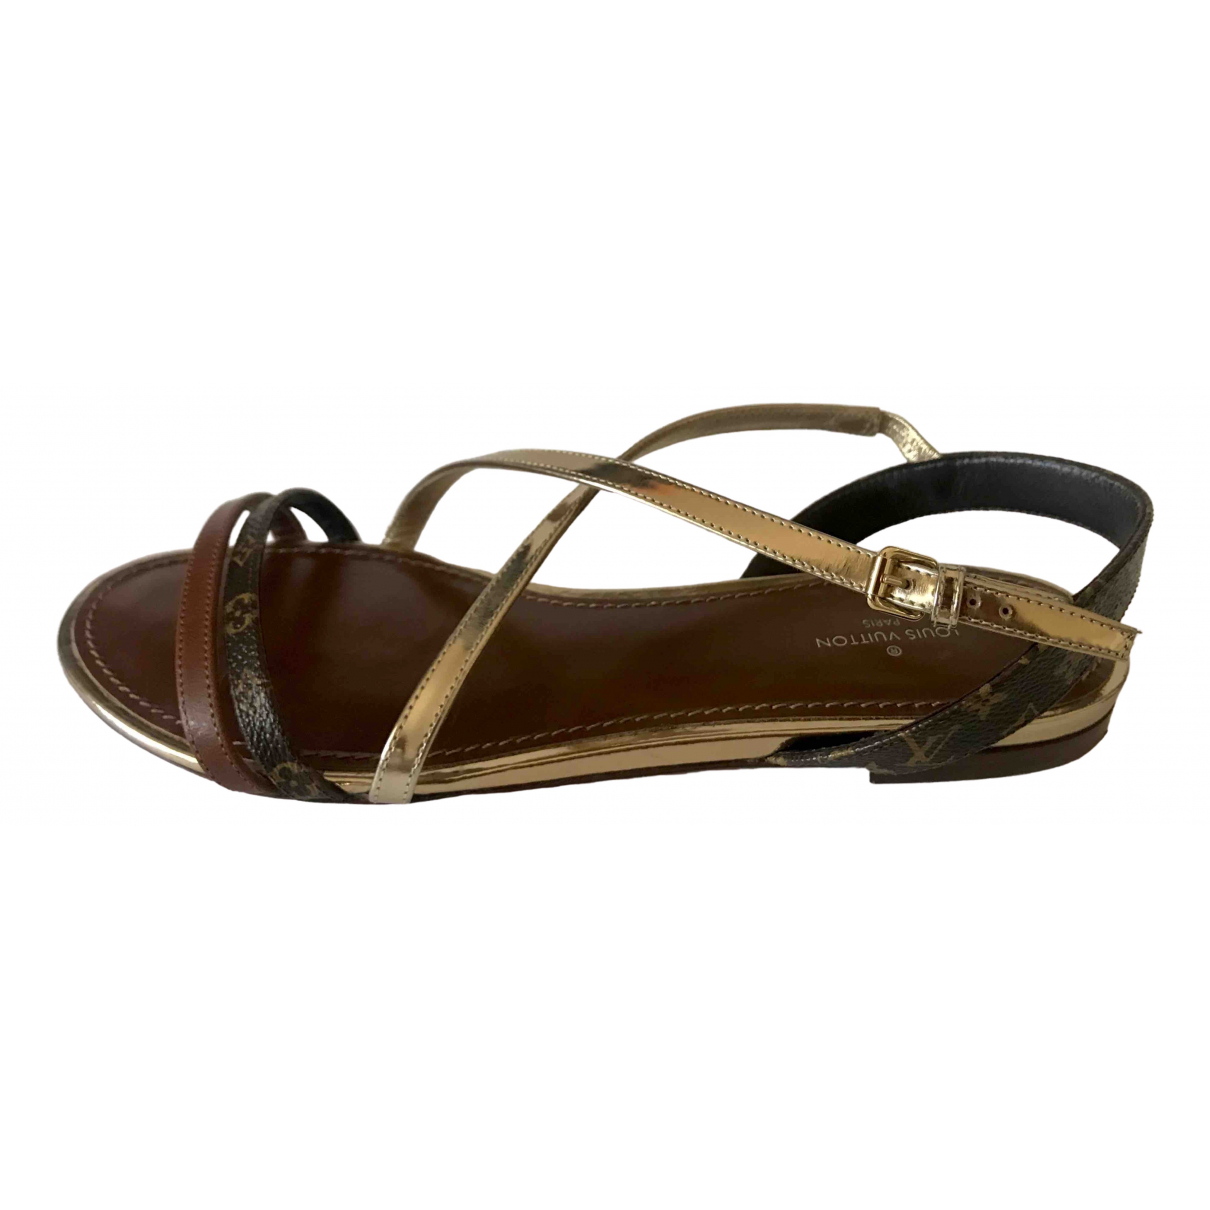 Louis Vuitton \N Brown Leather Sandals for Women 38 EU